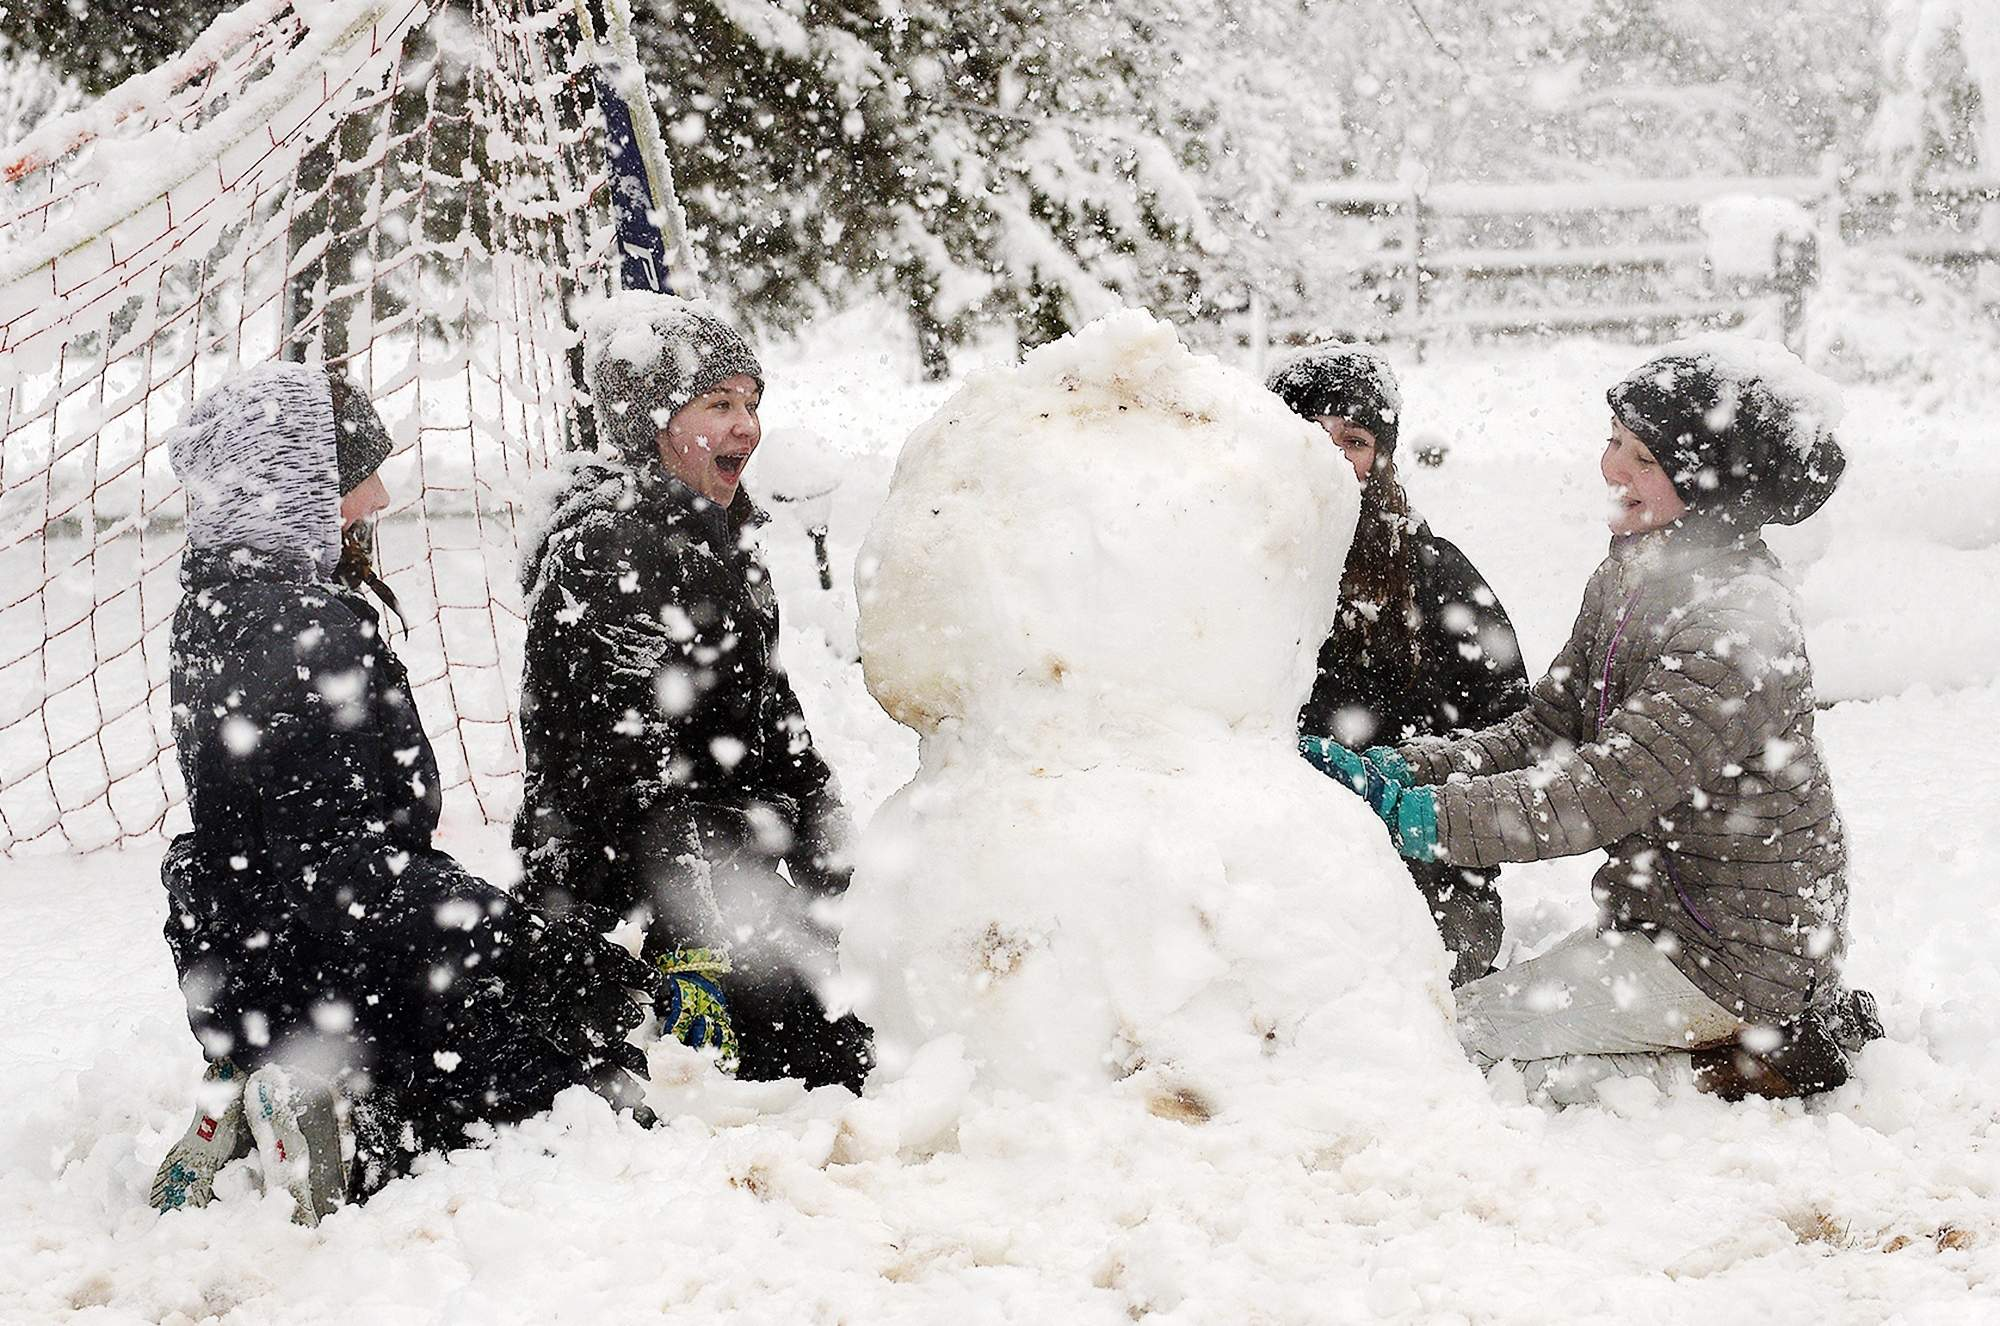 From left, Ashley Allen, Georgia Kelso, Jordyn Fuges and Molly Kelso build a snowman during the nor'easter Wednesday, March 7, 2018, in New Britain Borough. [KIM WEIMER / STAFF PHOTOJOURNALIST]